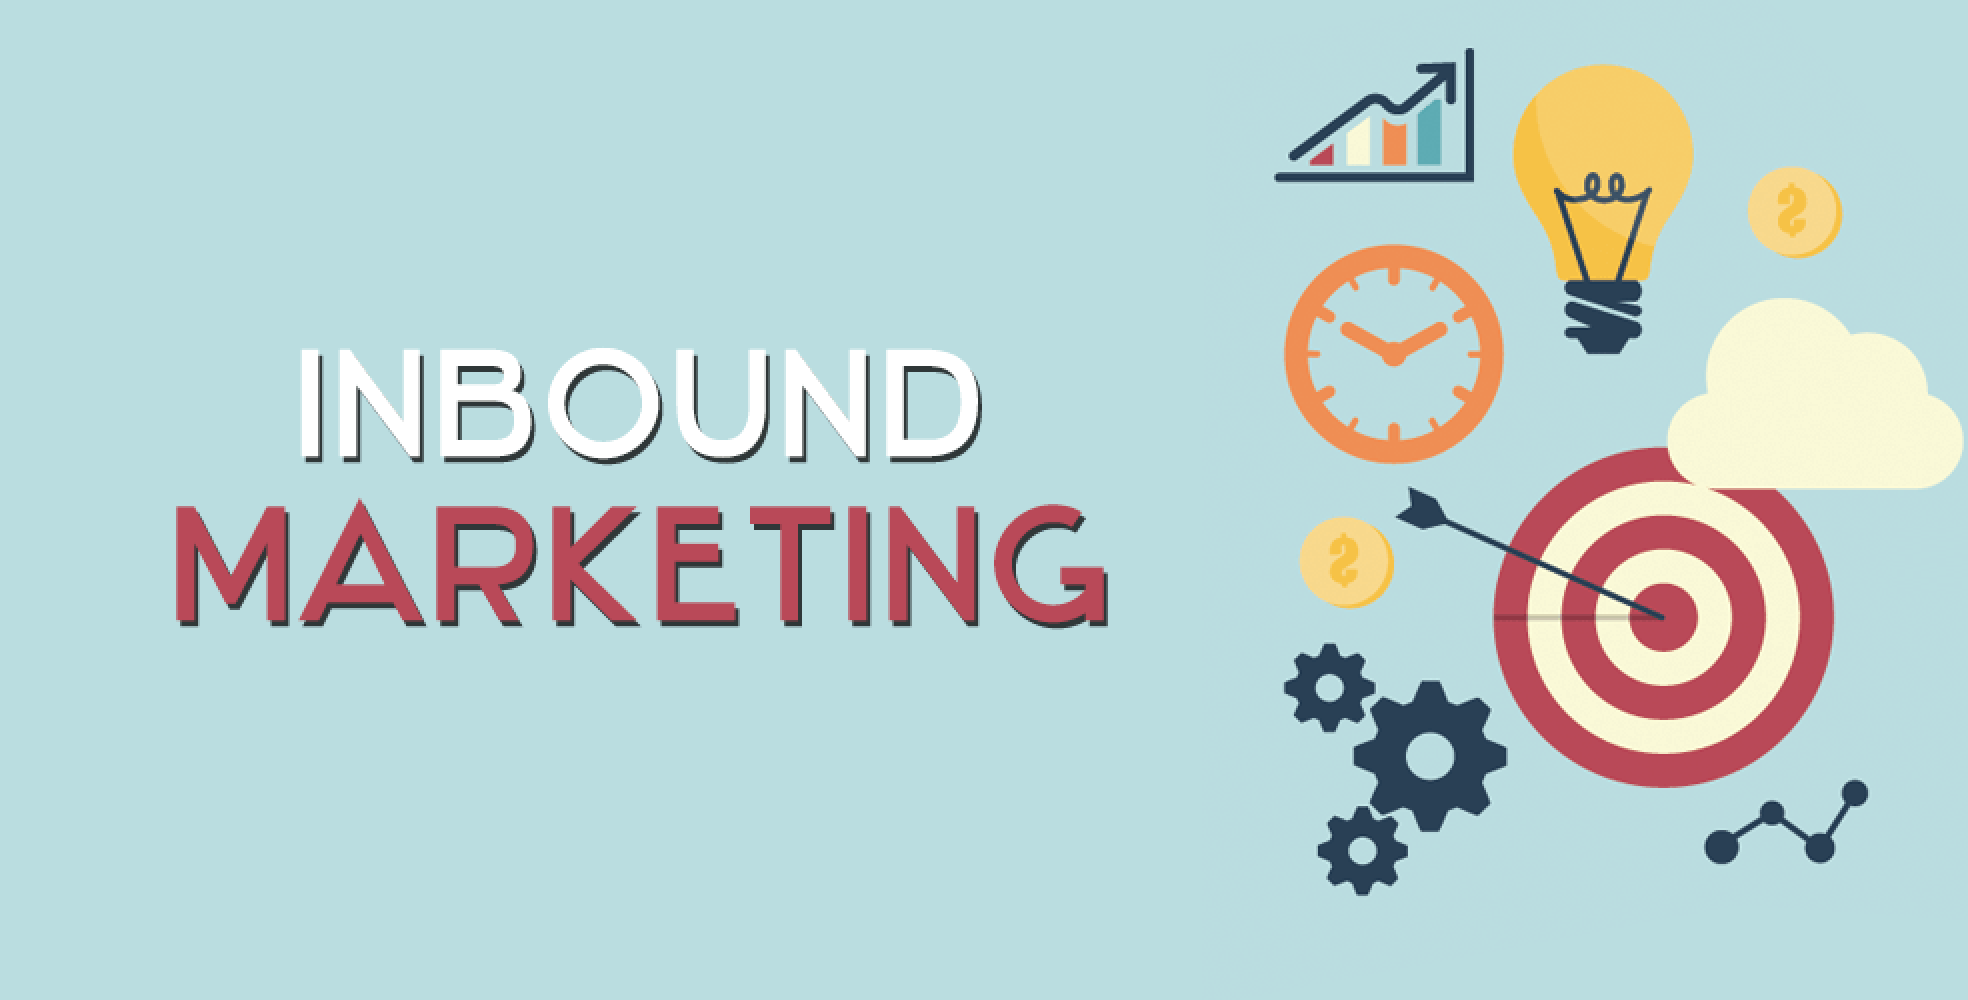 Inscription: Inbound Marketing on a blue background